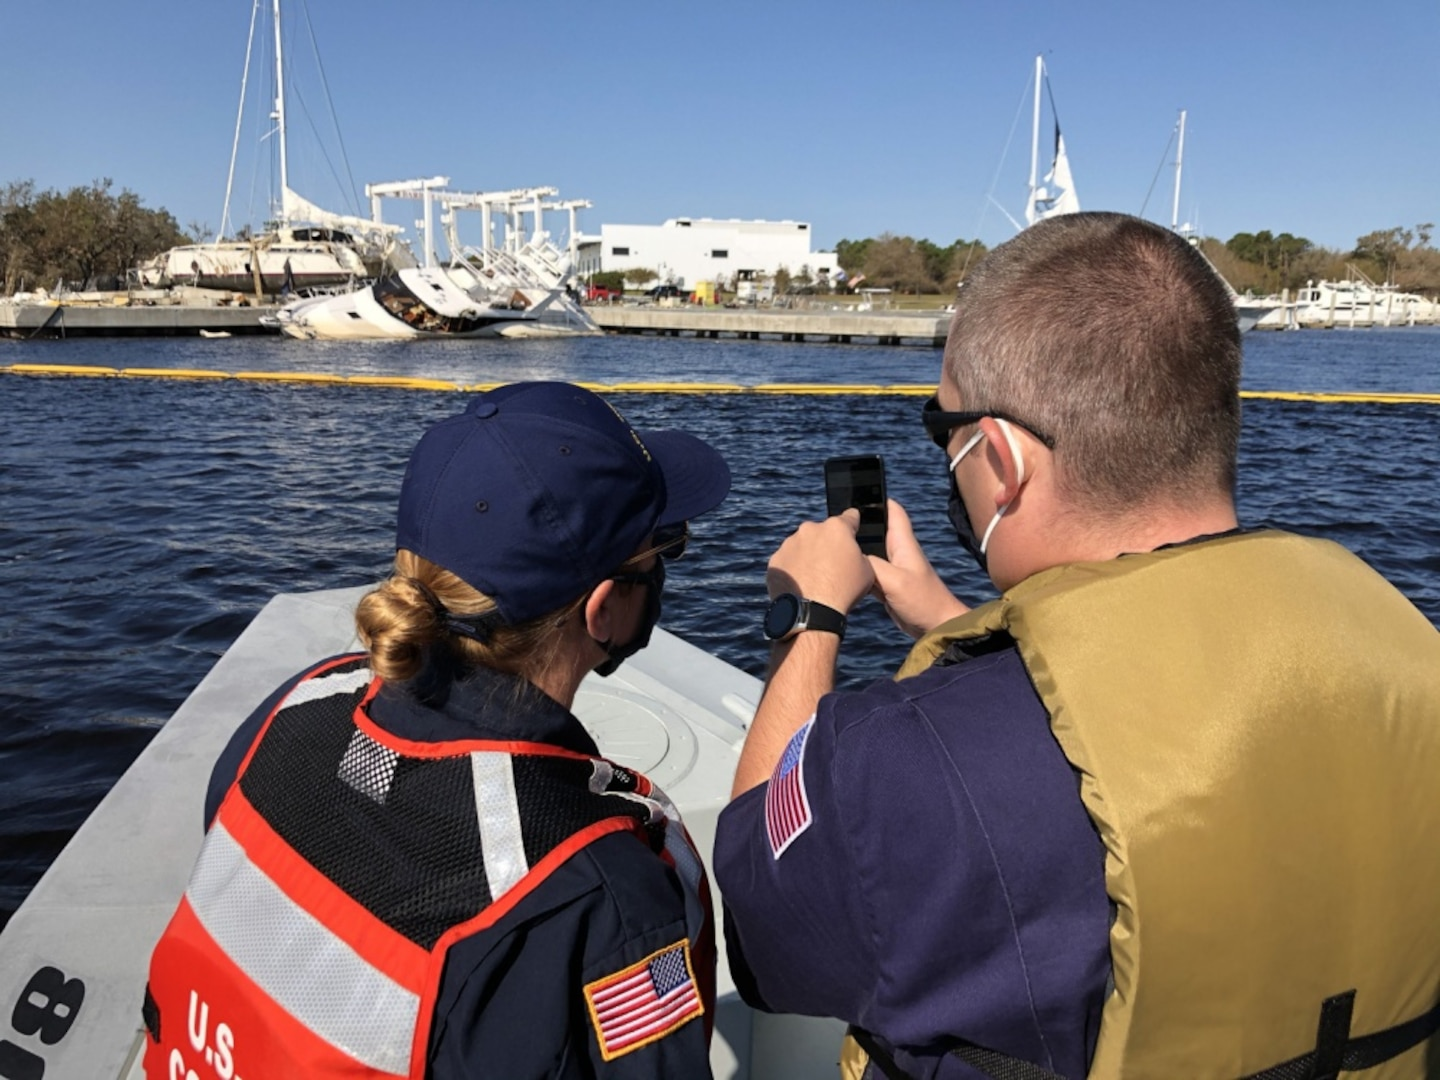 Coast Guard Petty Officer 1st Class Alysha Nagel, and Petty Officer 2nd Class Garrett Ragland conduct post Hurricane Sally assessments to determine environmental threats posed by vessels, in Perdido Bay in Lillian, Alabama, Oct. 3, 2020. Marine Environmental Response teams validated vessel statuses from initial data collected immediately following the hurricane. U.S. Coast Guard photo by Chief Petty Officer Melissa Leake.